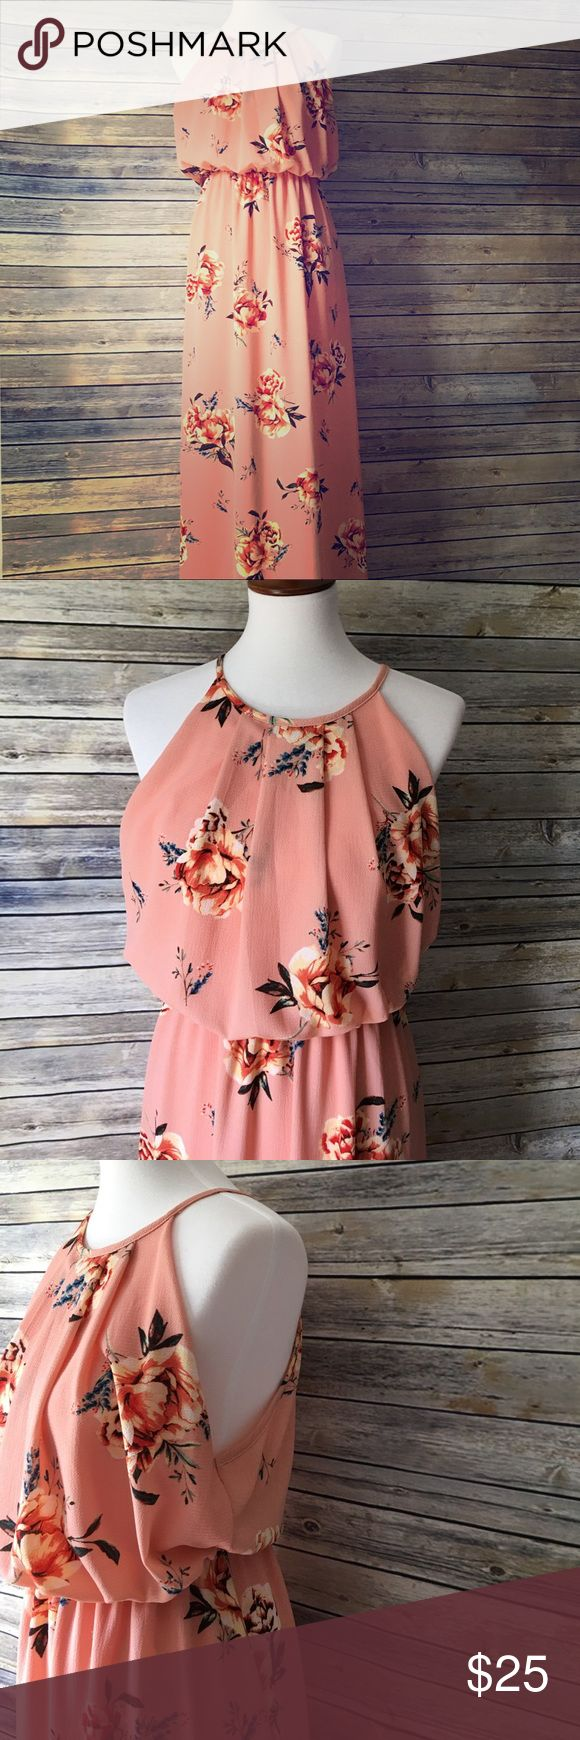 🌺💐FLORAL MAXI DRESS💐🌺 NWOT- This breezy high neck maxi dress is the perfect match for a sunny day. Made of lightweight material with built in slip. Has two splits-one up each side of the dress.  The top is high neck and same as the back with the peep hole by the button. The top is a loose fit and the bottom is flowy. Also has the elastic band around the waist. Dresses Maxi